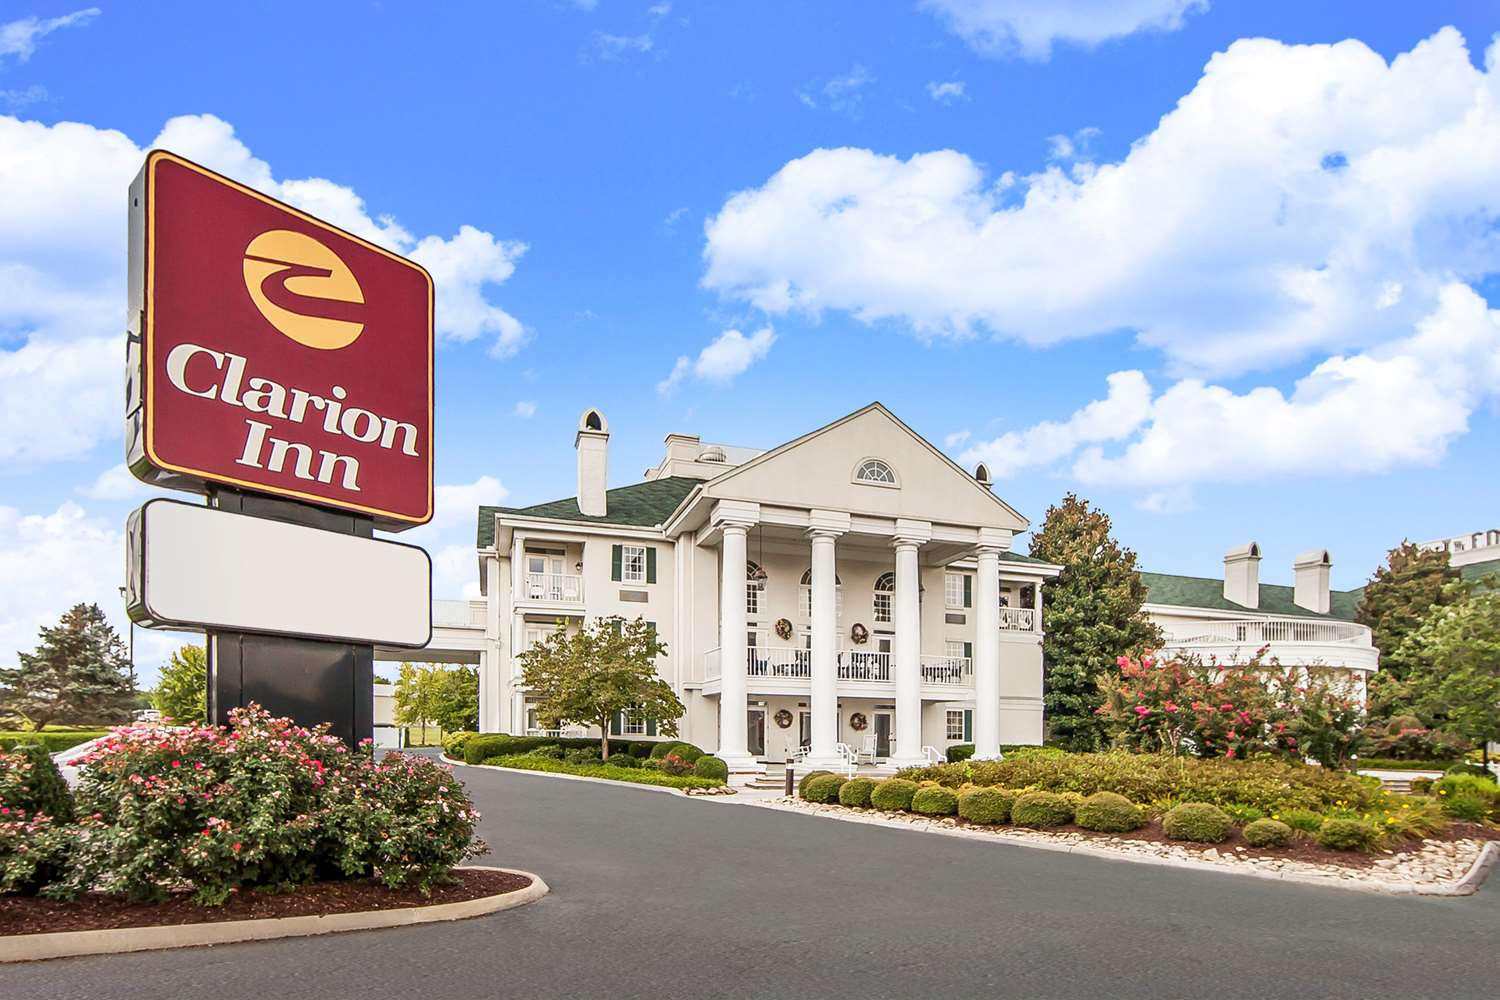 Clarion Inn Willow River Sevierville